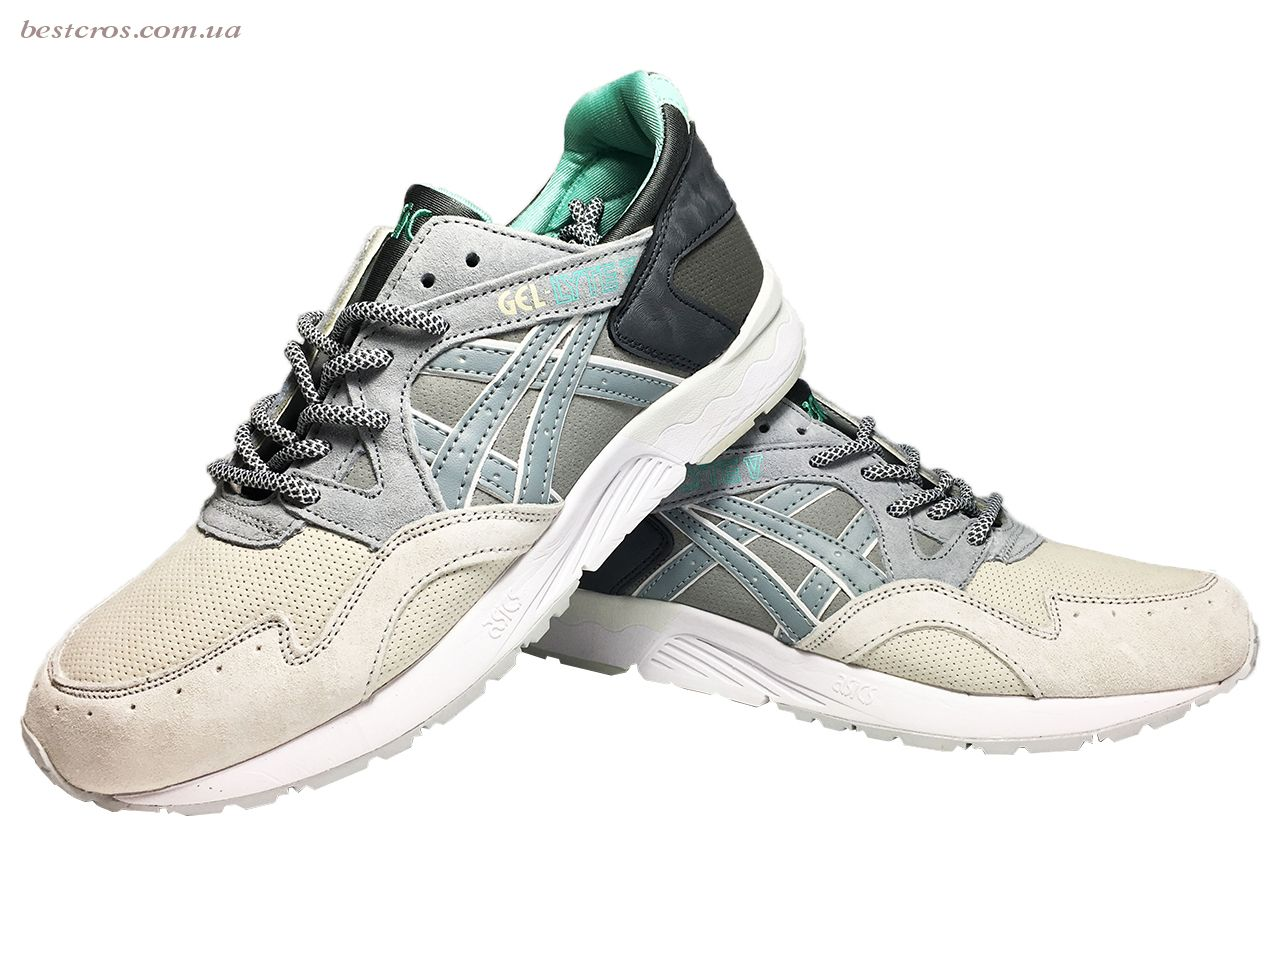 Мужские кроссовки Asics Gel Cream/Grey/Black/White/Light green - фото №4